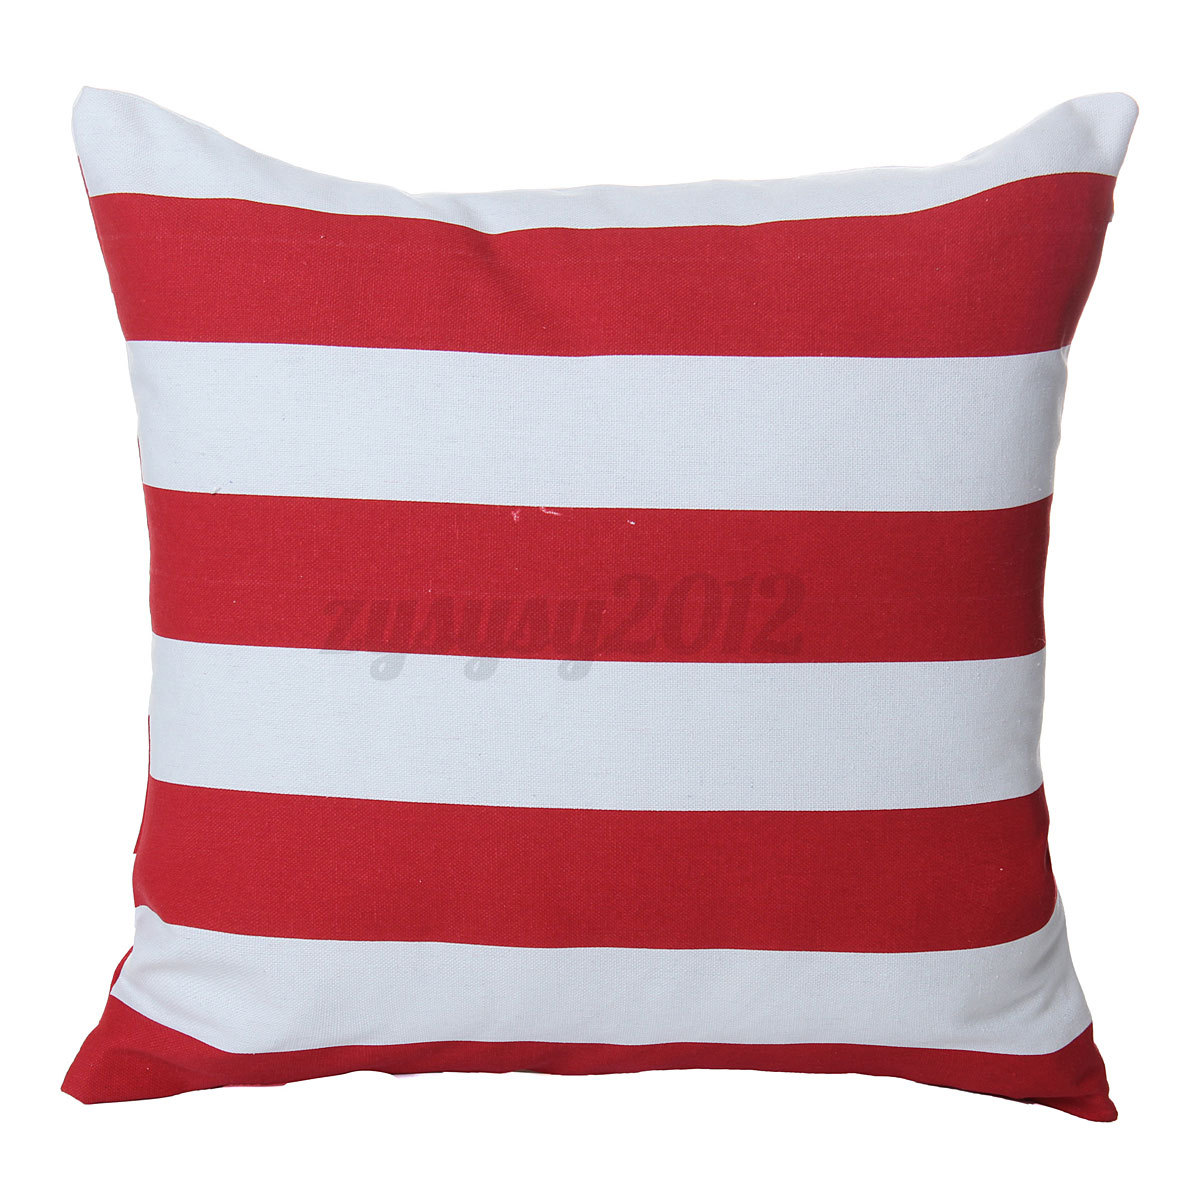 housse de coussin ondulant taie oreiller cushion cover sofa canap g om trique ebay. Black Bedroom Furniture Sets. Home Design Ideas